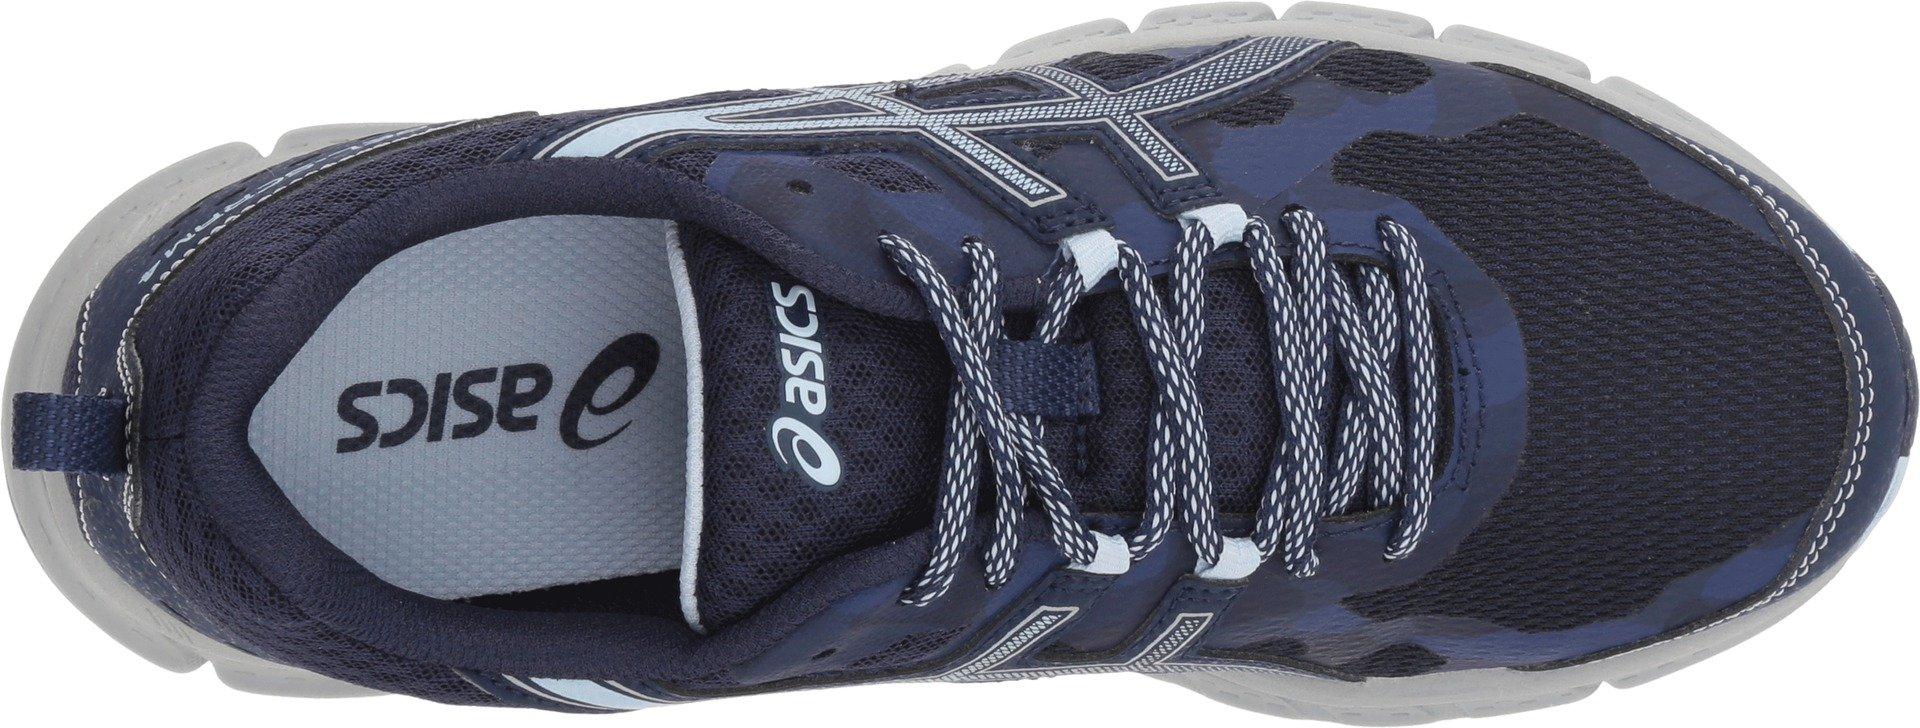 ASICS 1012A039 Women's Gel-Scram 4 Running Shoe, Peacoat/Soft Sky - 5.5 B(M) US by ASICS (Image #2)